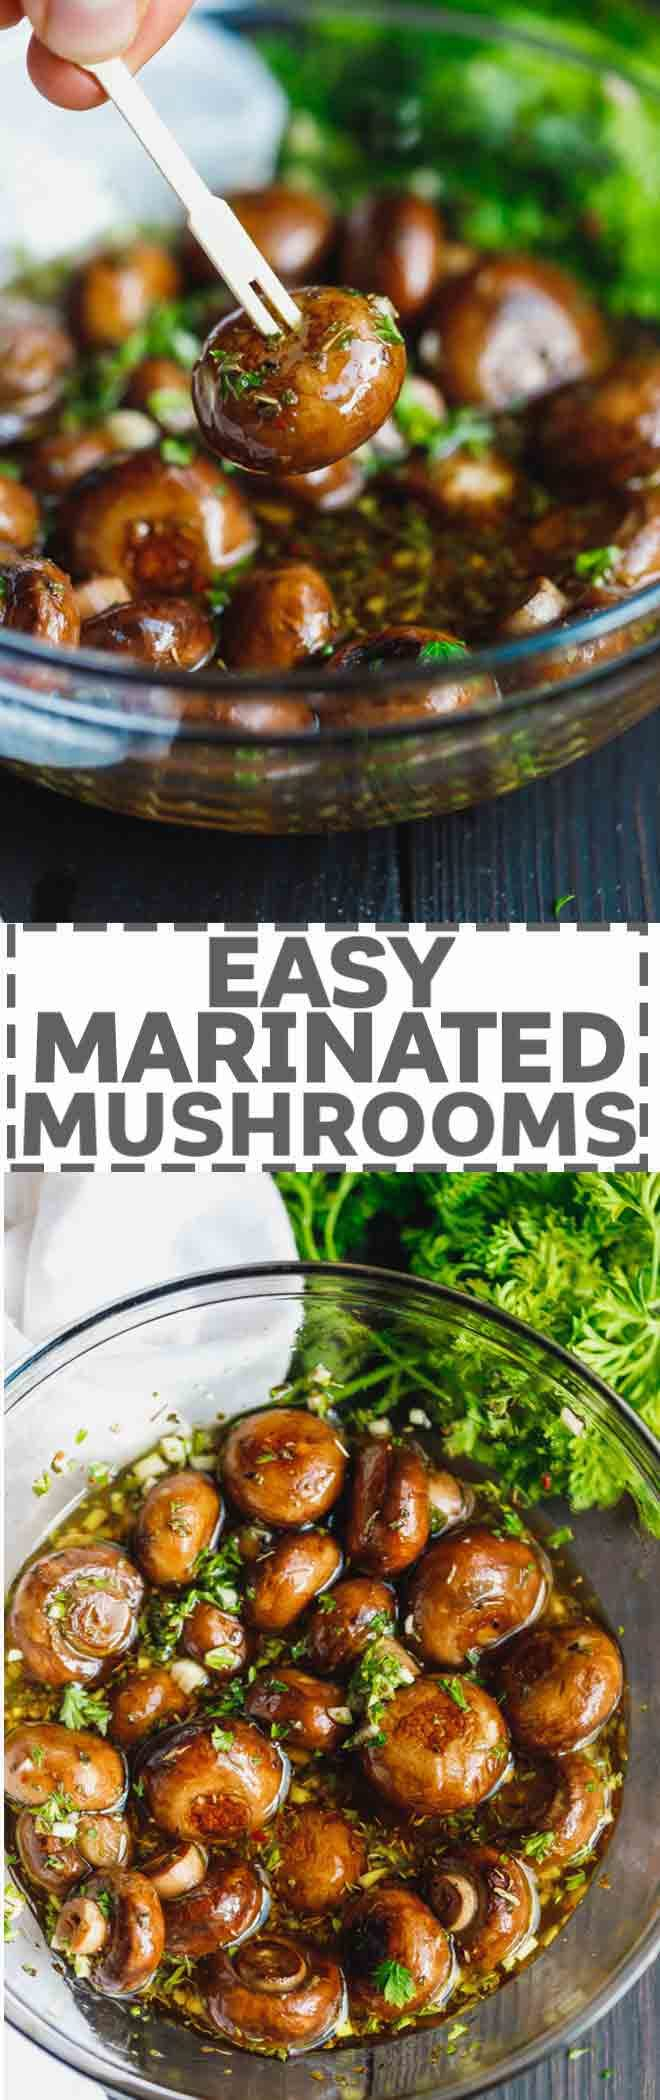 Easy marinaded mushrooms on an appetizer wooden pick